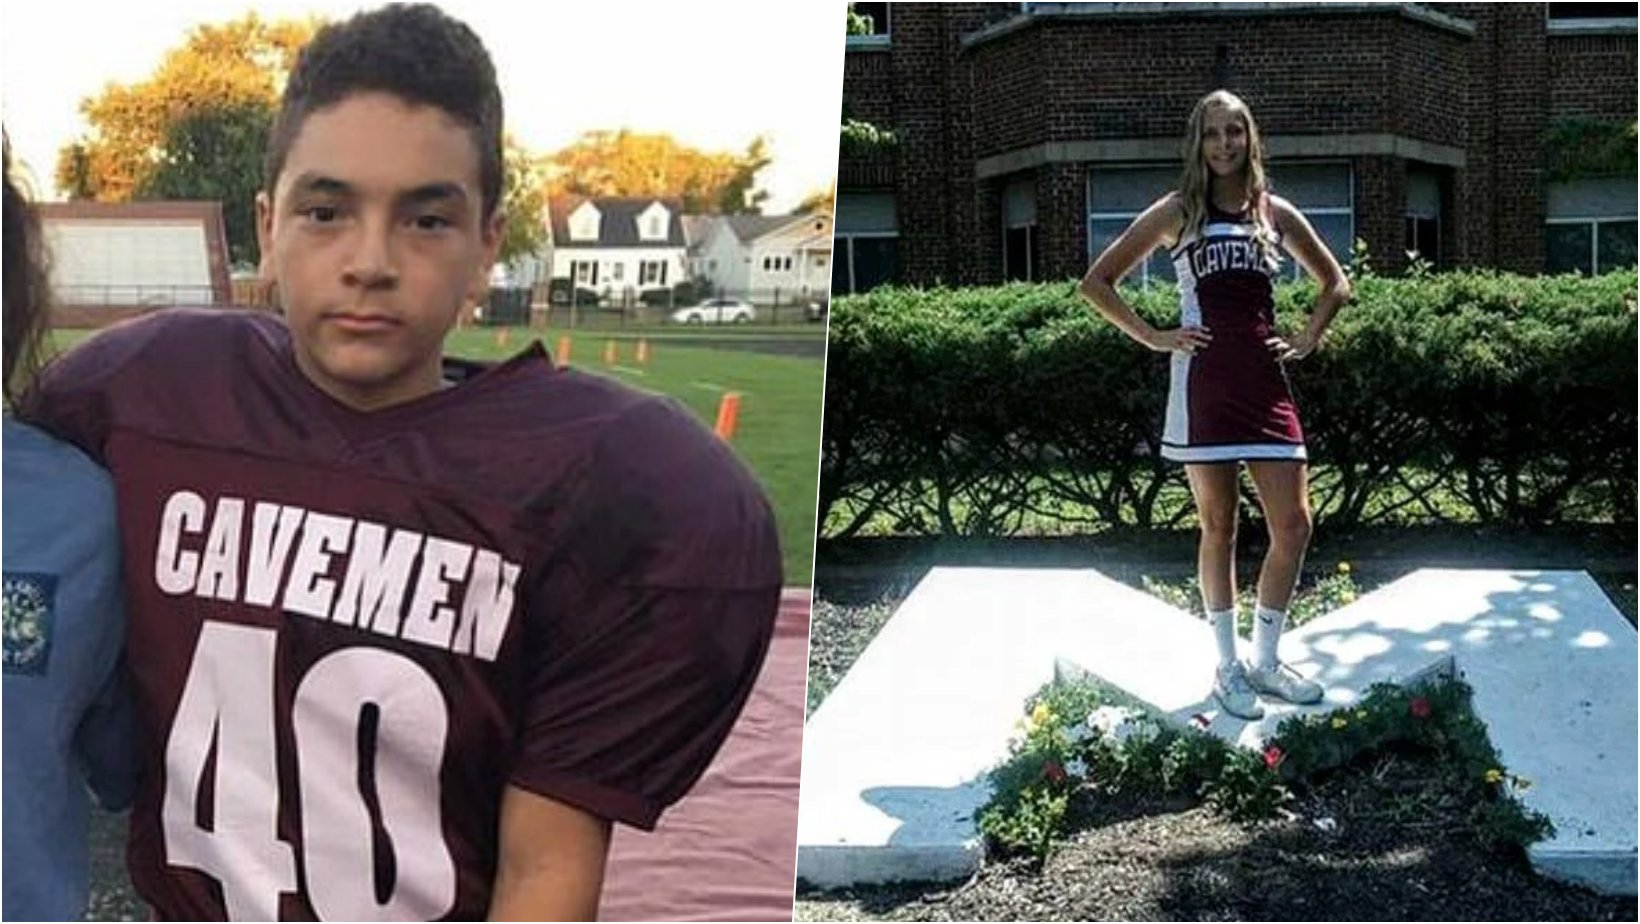 6 facebook cover 34.png?resize=1200,630 - Teen Stabbed His Pregnant Girlfriend After She Refused An Abortion & Decided To Keep The Baby